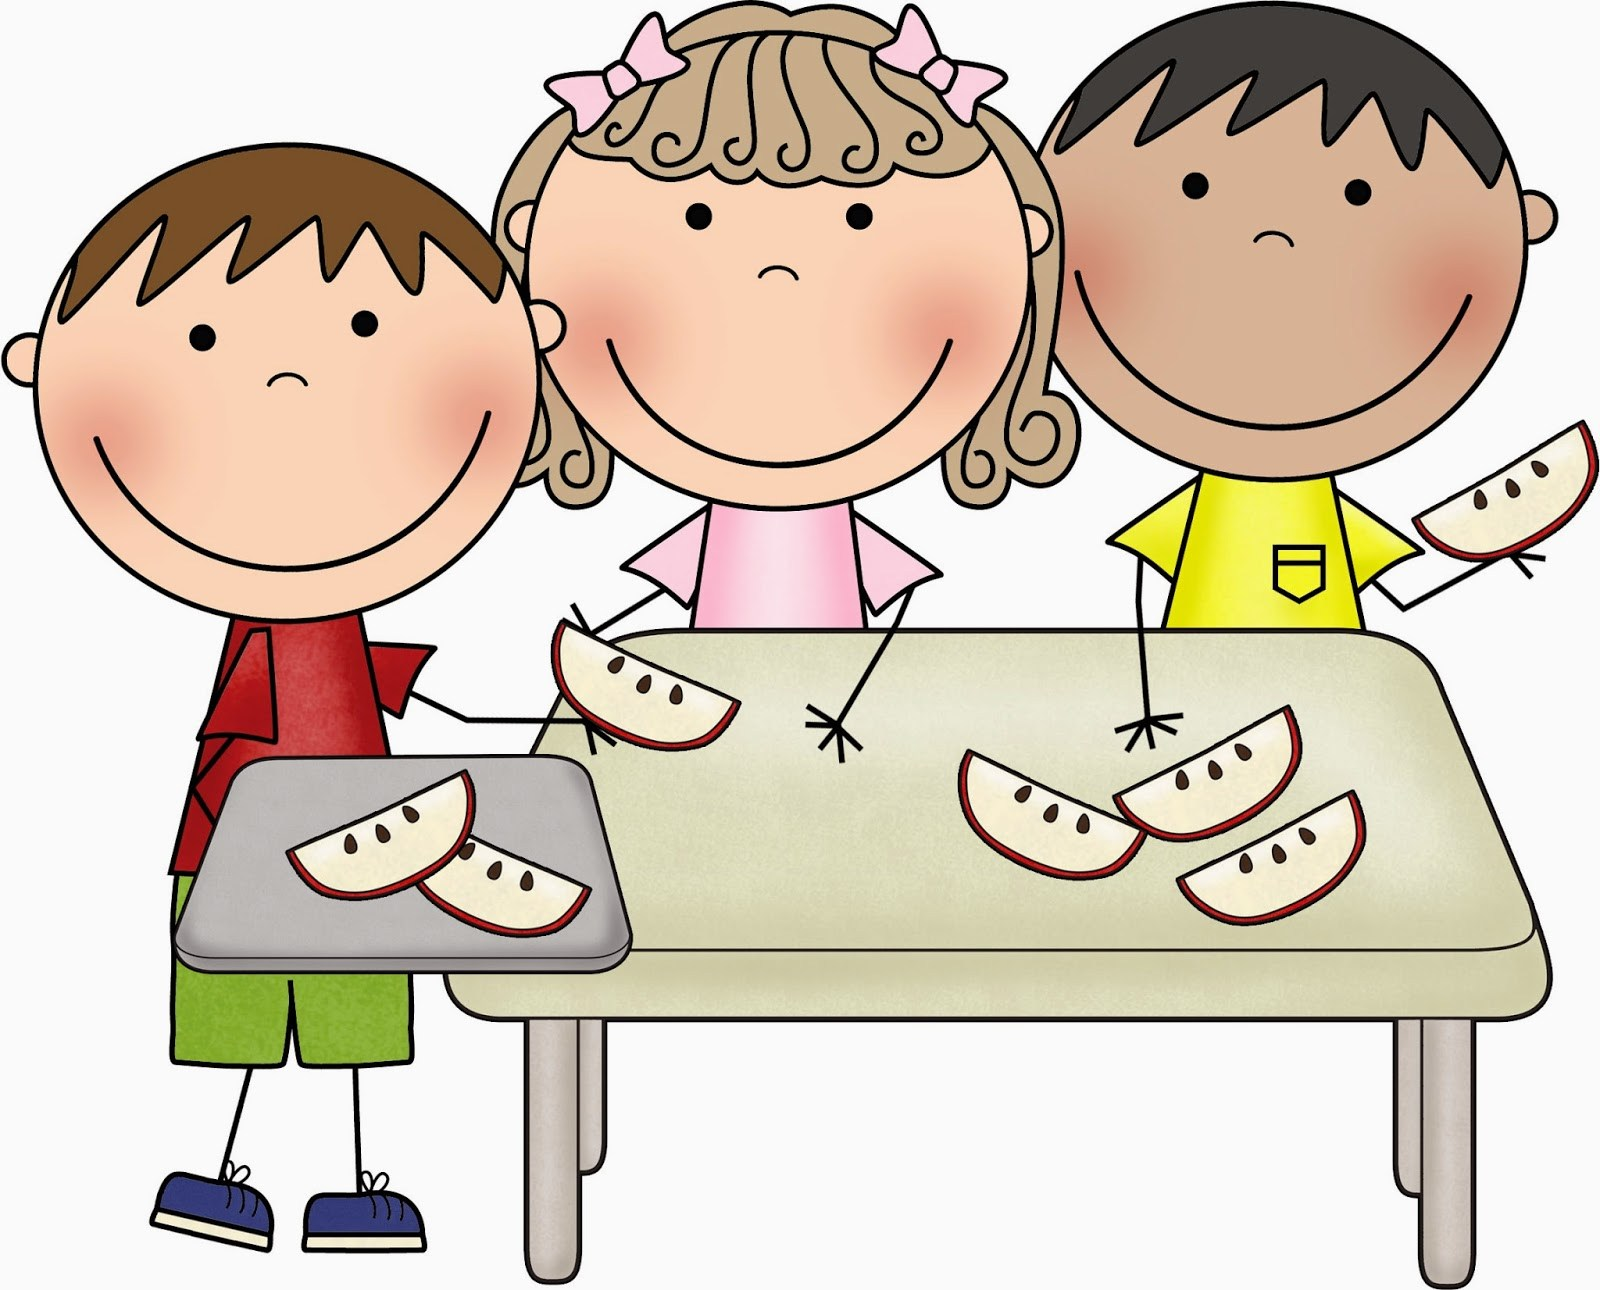 Preschool breakfast clipart 3 » Clipart Portal.